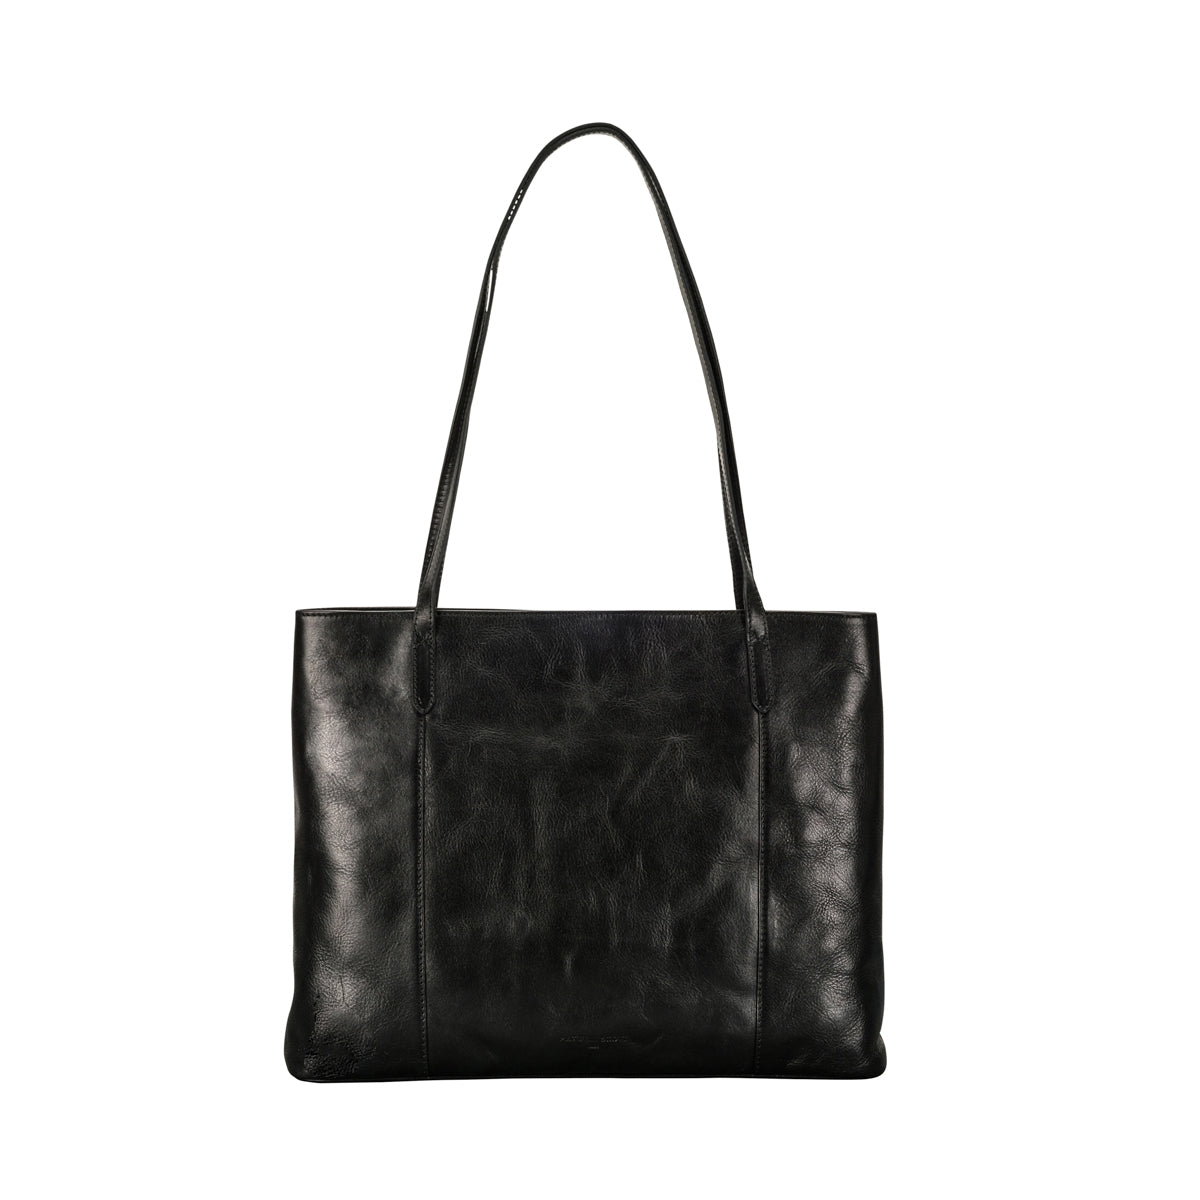 Image 4 of the 'Athenea' Black Veg-Tanned Leather Shopper